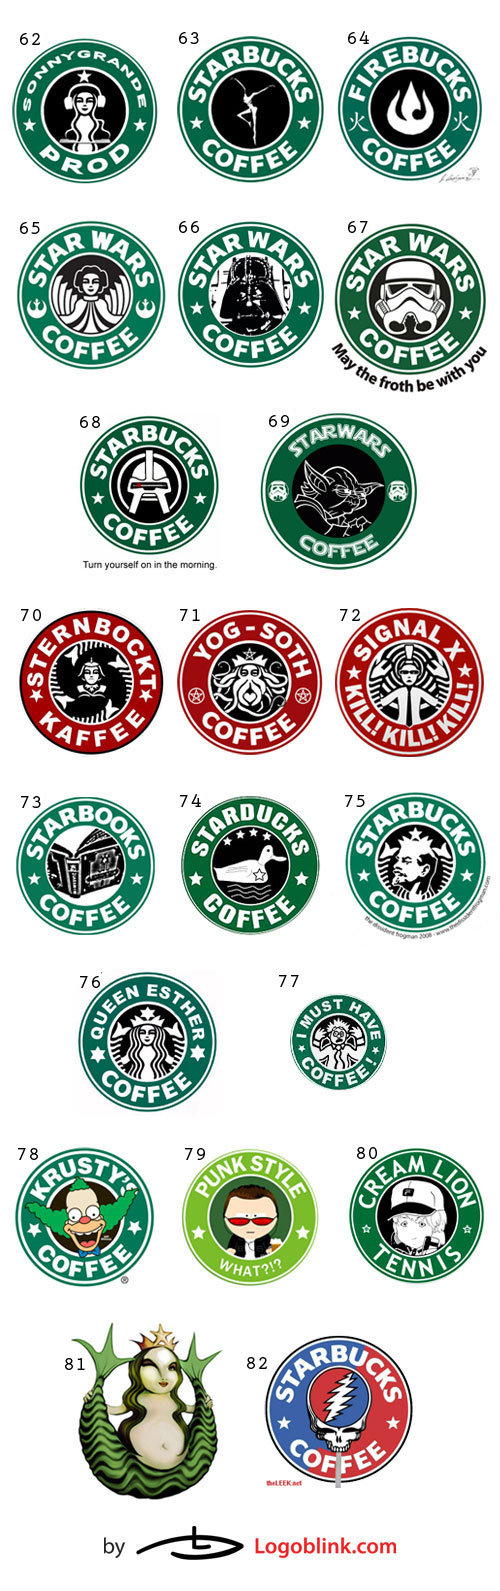 coffee chain design logo mania